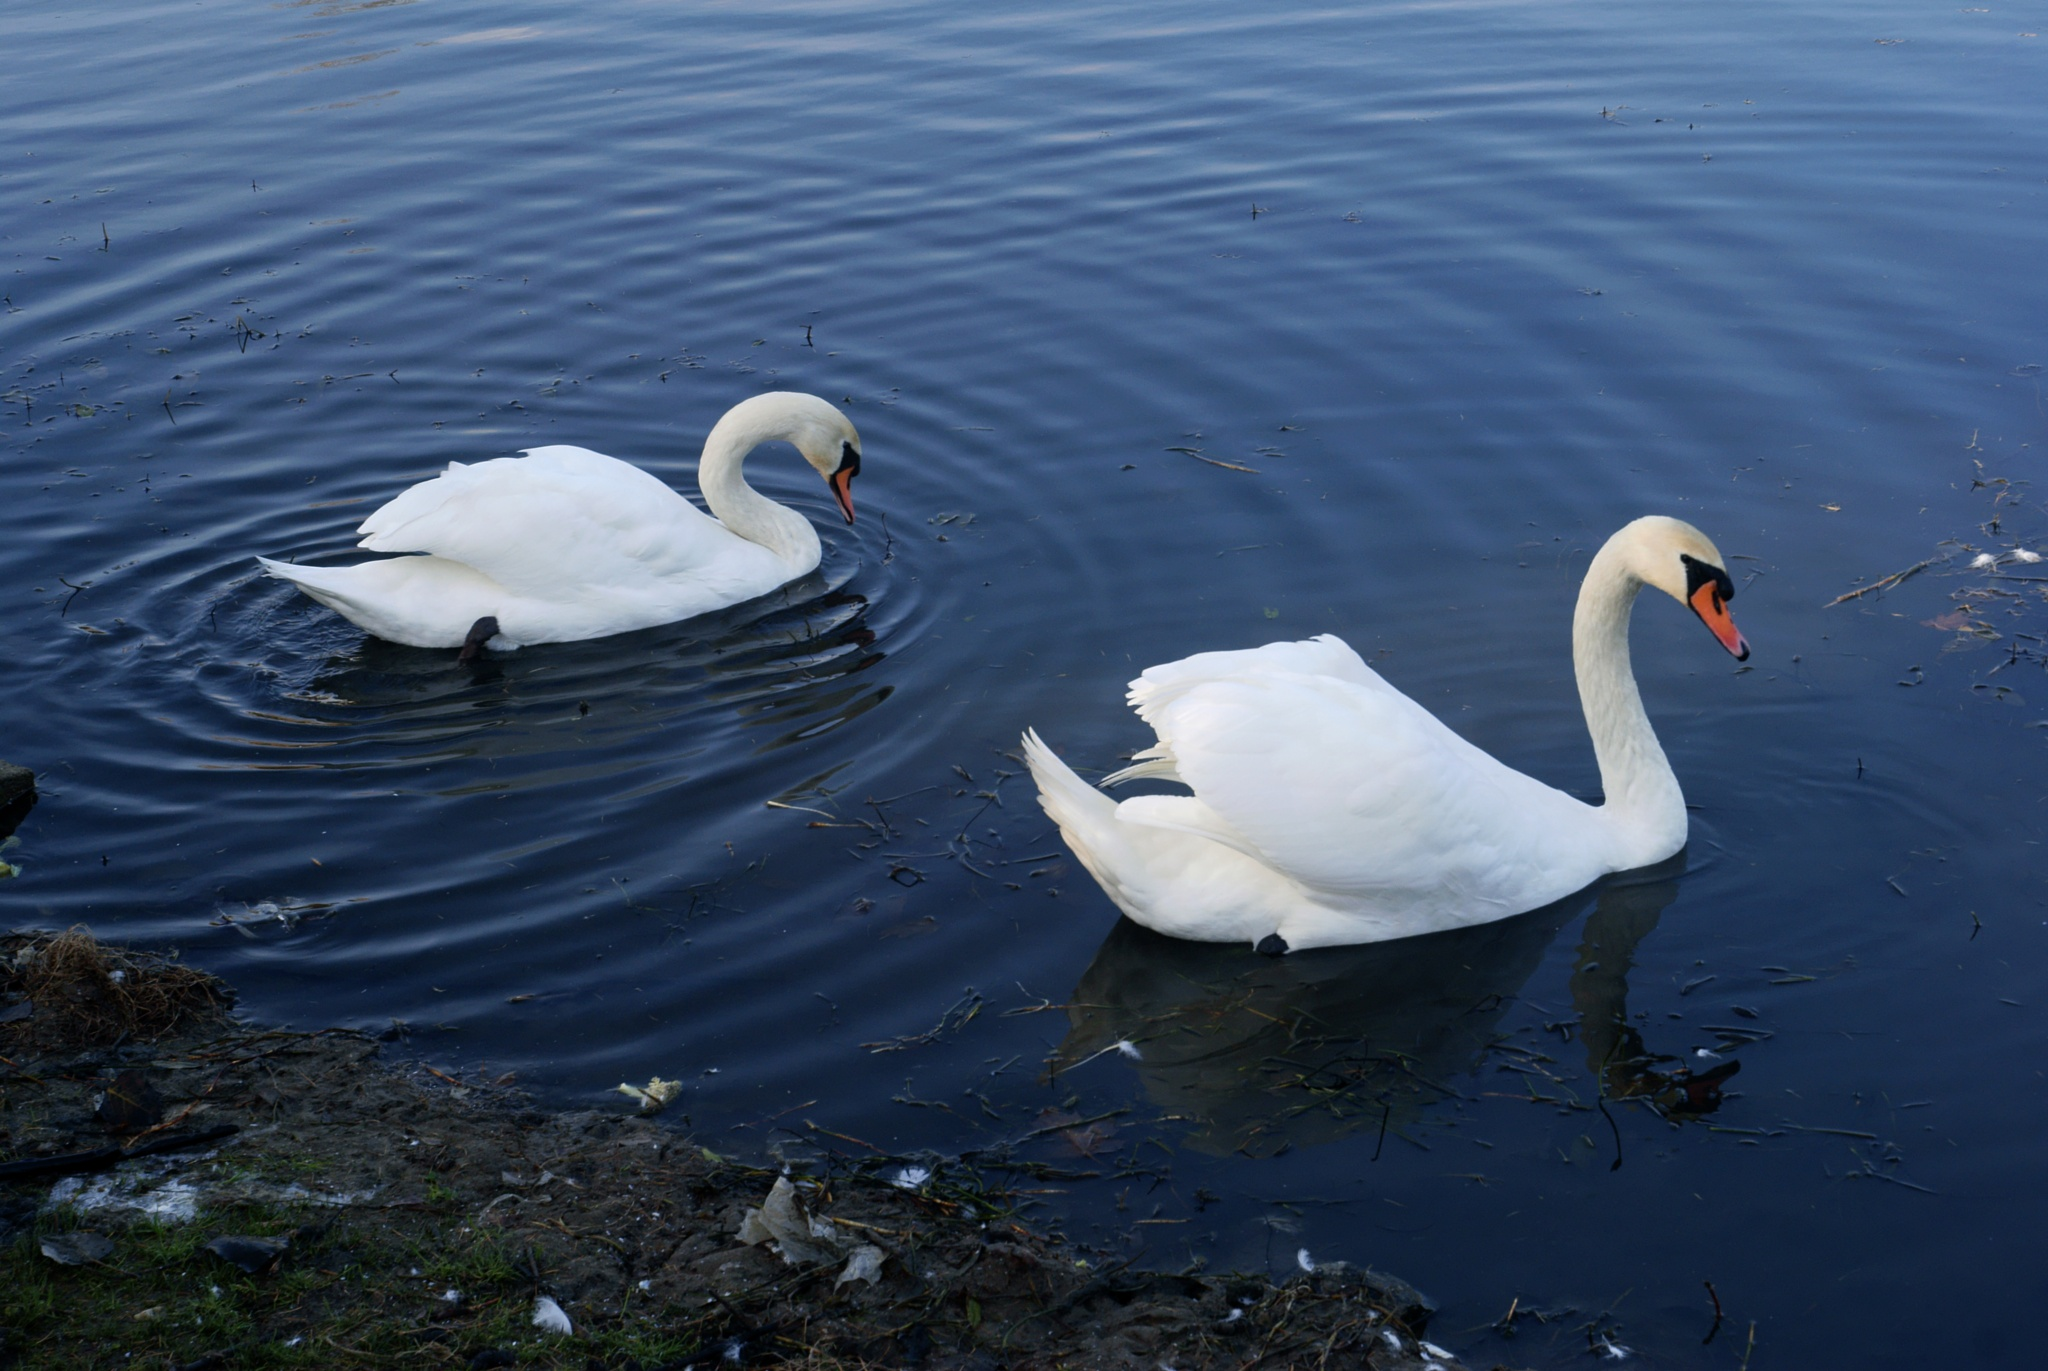 swans by mironik202